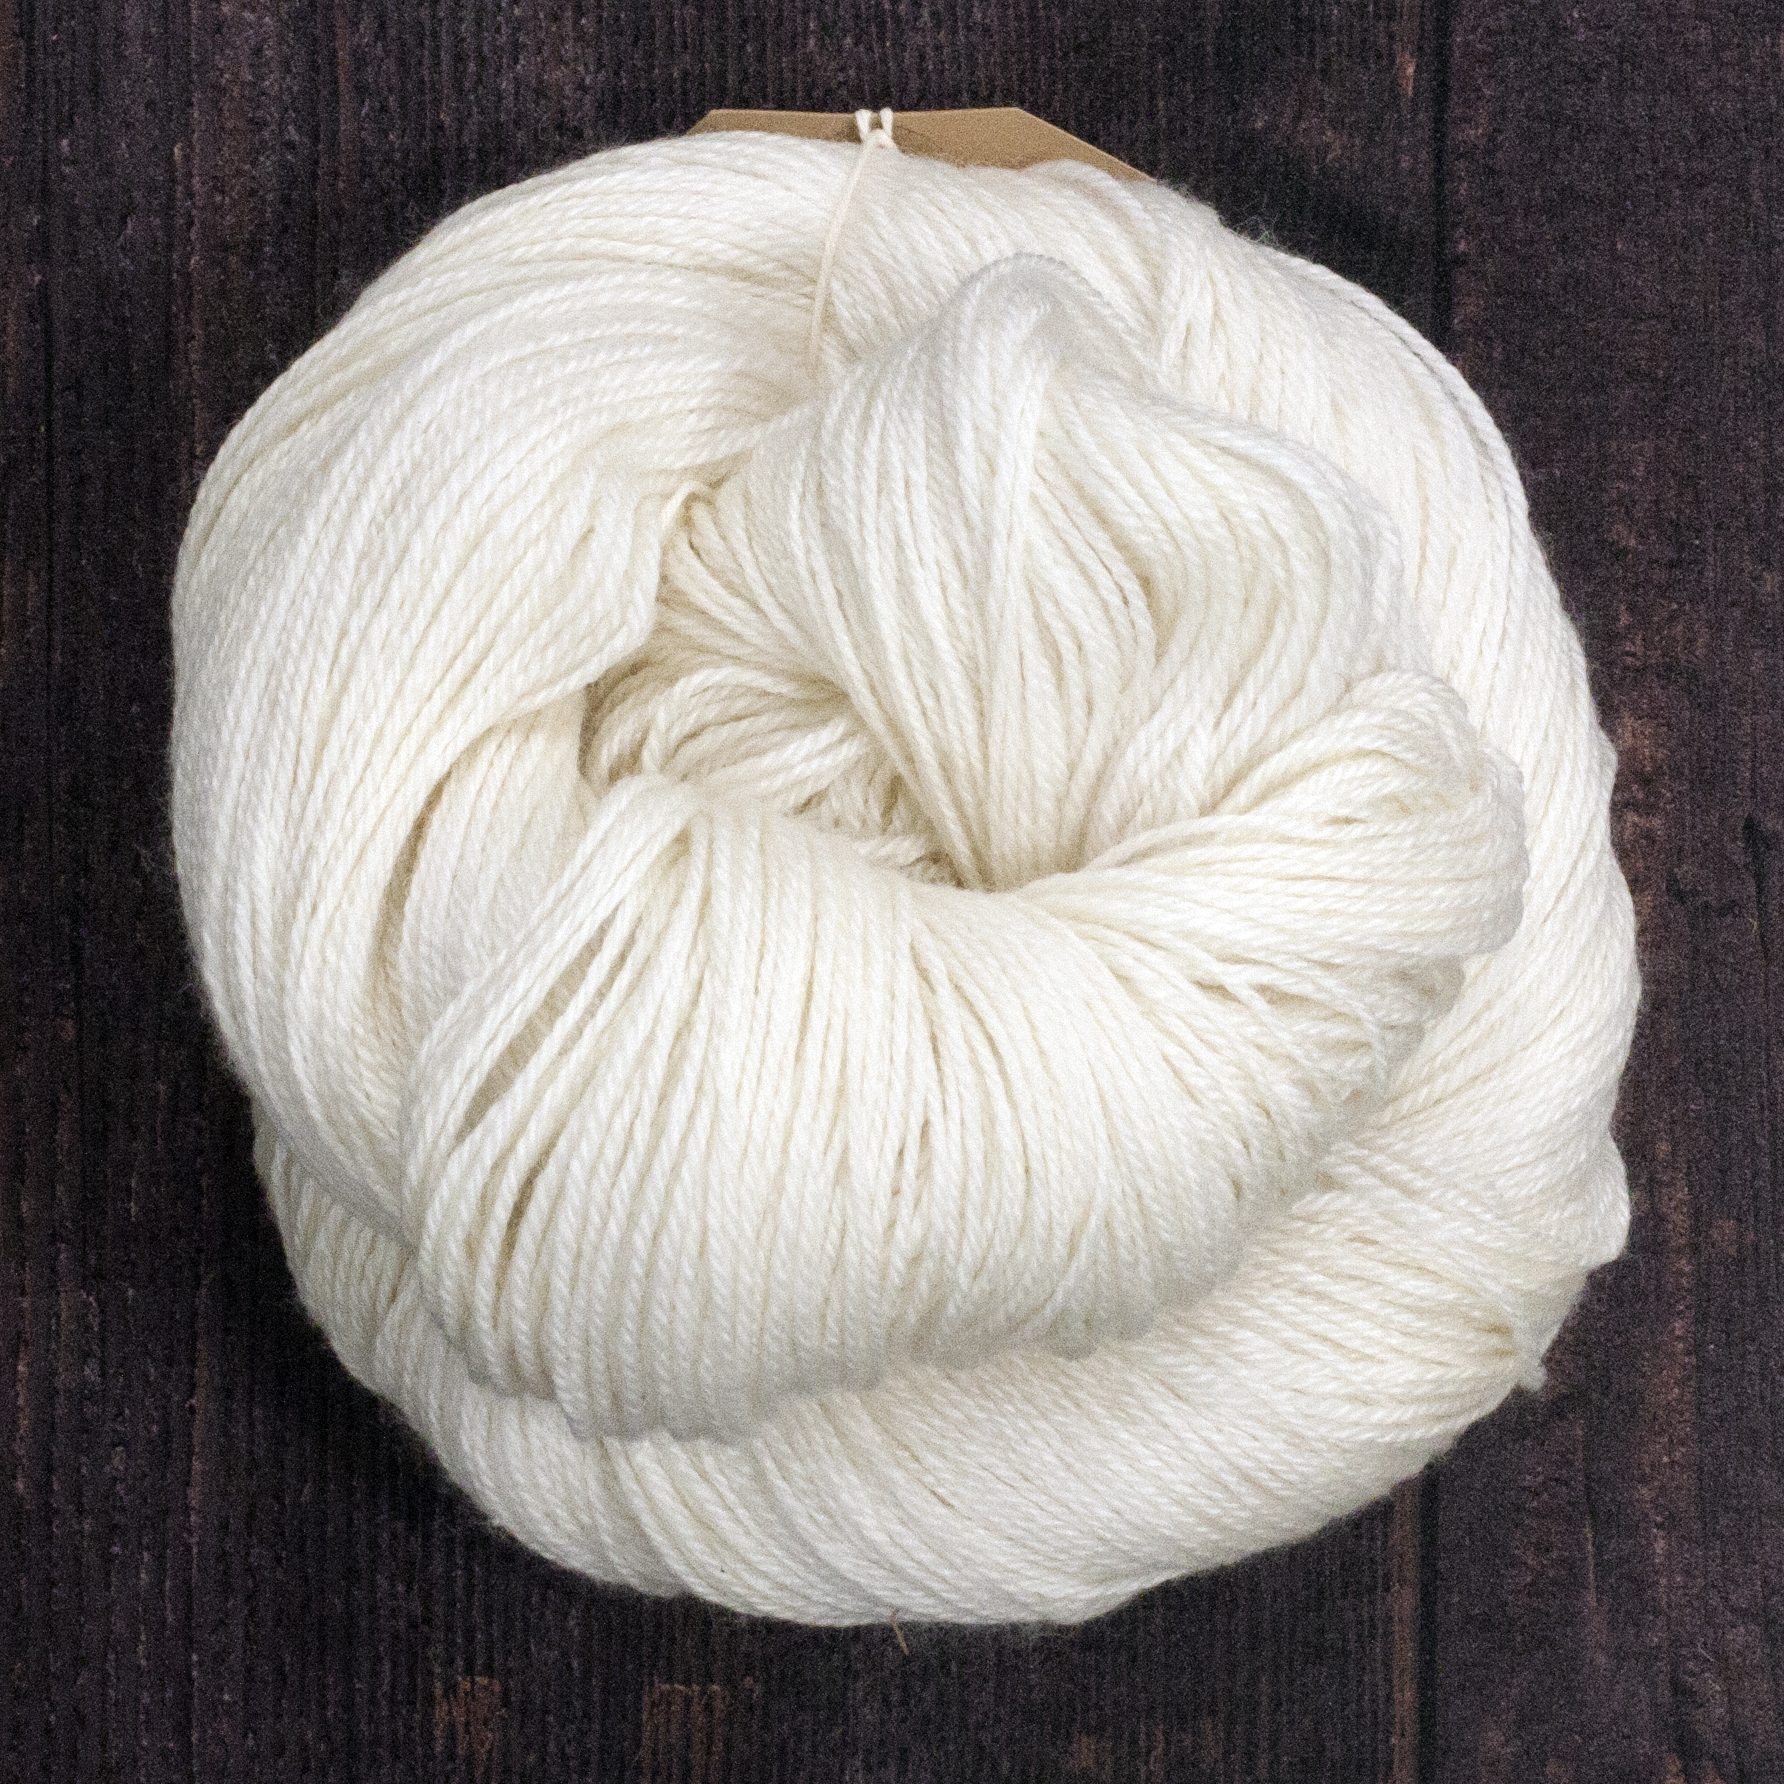 Type 49133   BFL Delicious 4ply   70% Superwash Bluefaced Leicester Wool 20% Silk  10% Cashmere  100g Hanks  400m per 100g 3/12nm